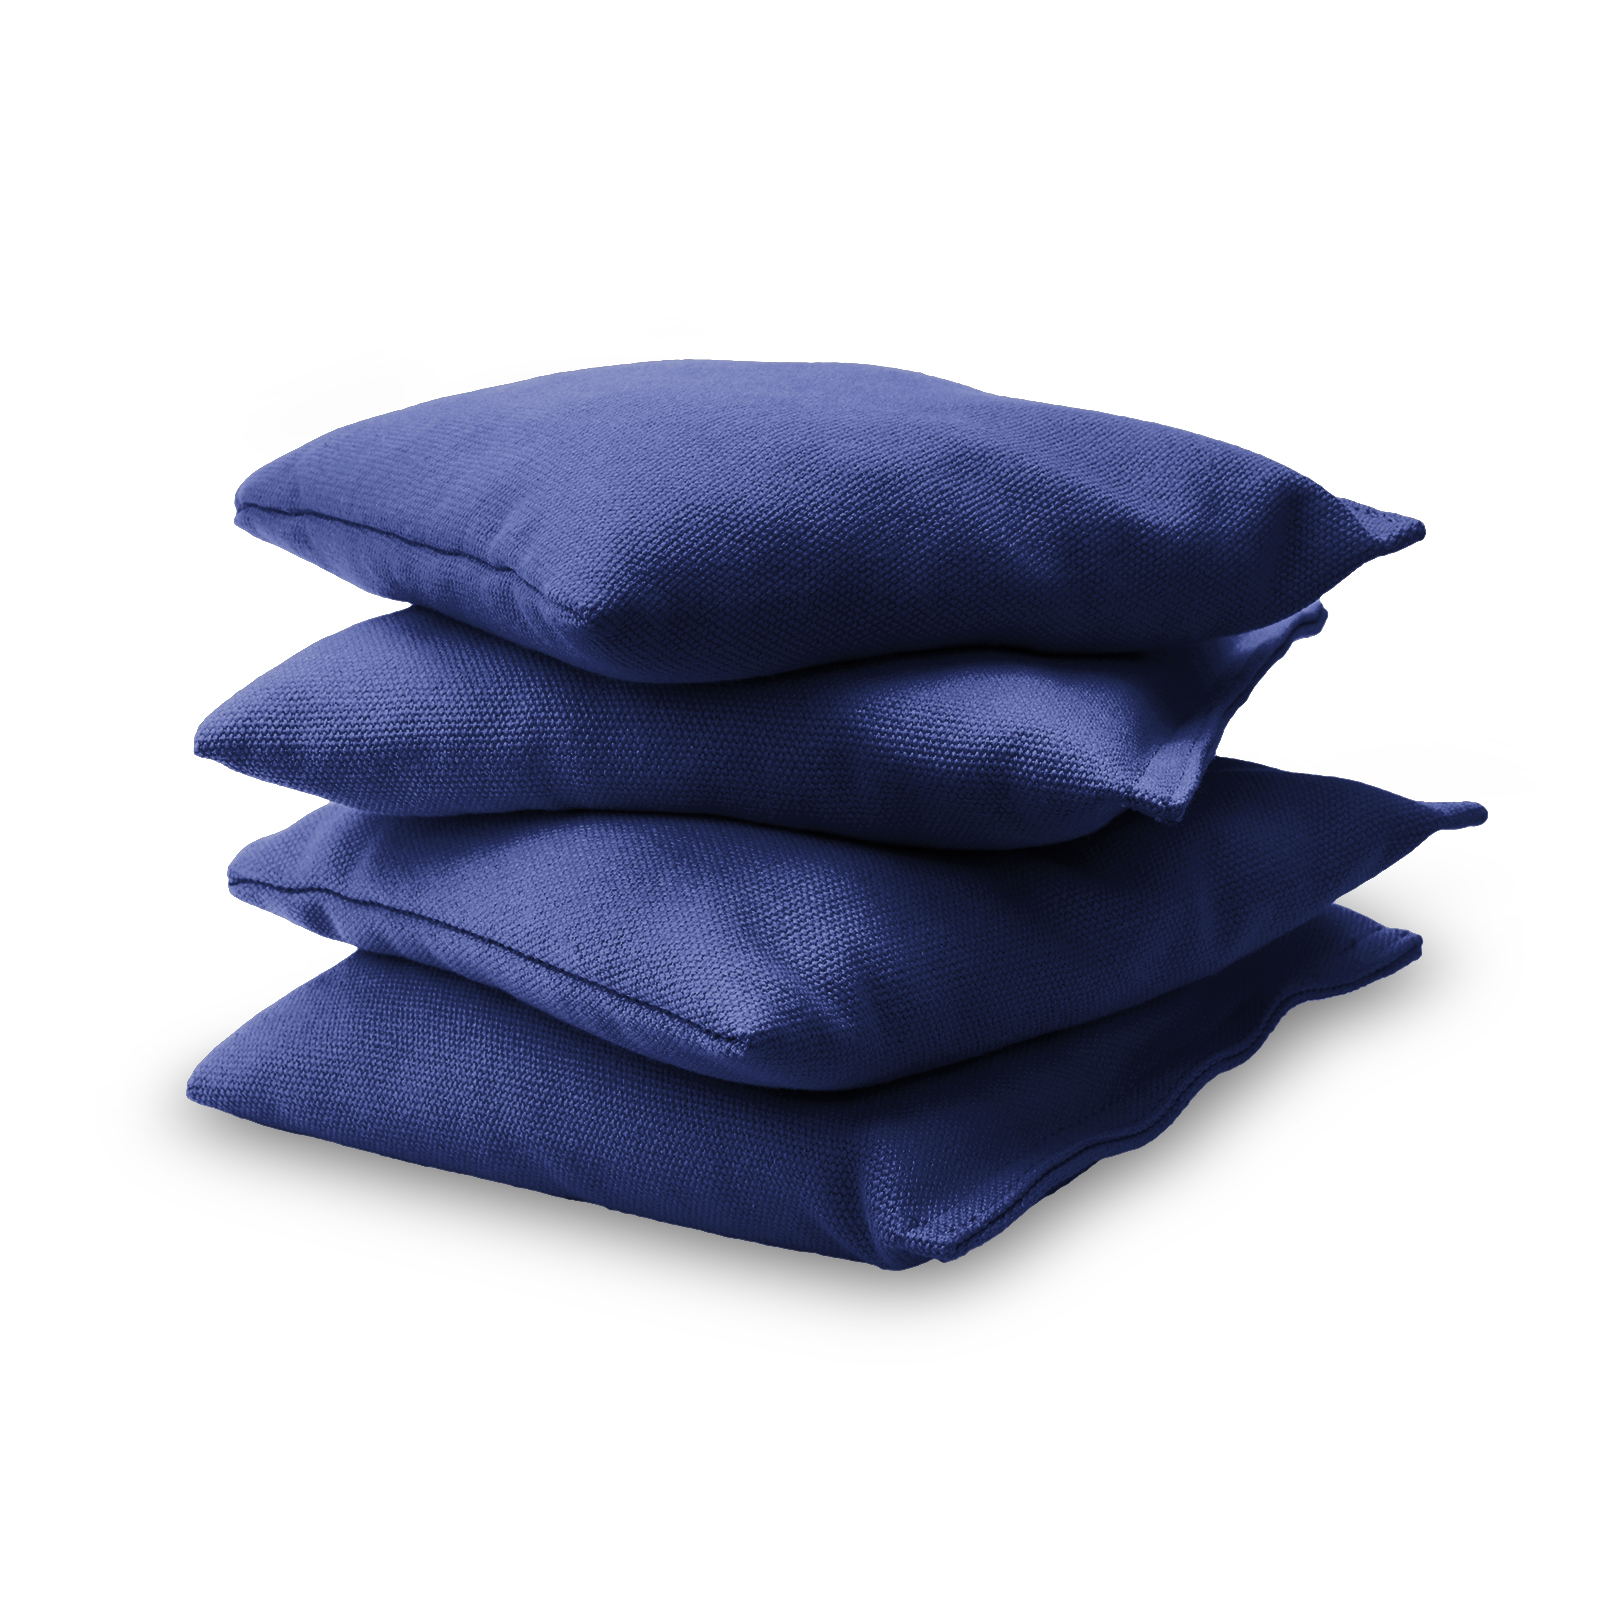 GoSports Premium Bean Bag Sets of 4 - 15 Color Choices - Filled with Synthetic Corn - Navy Blue